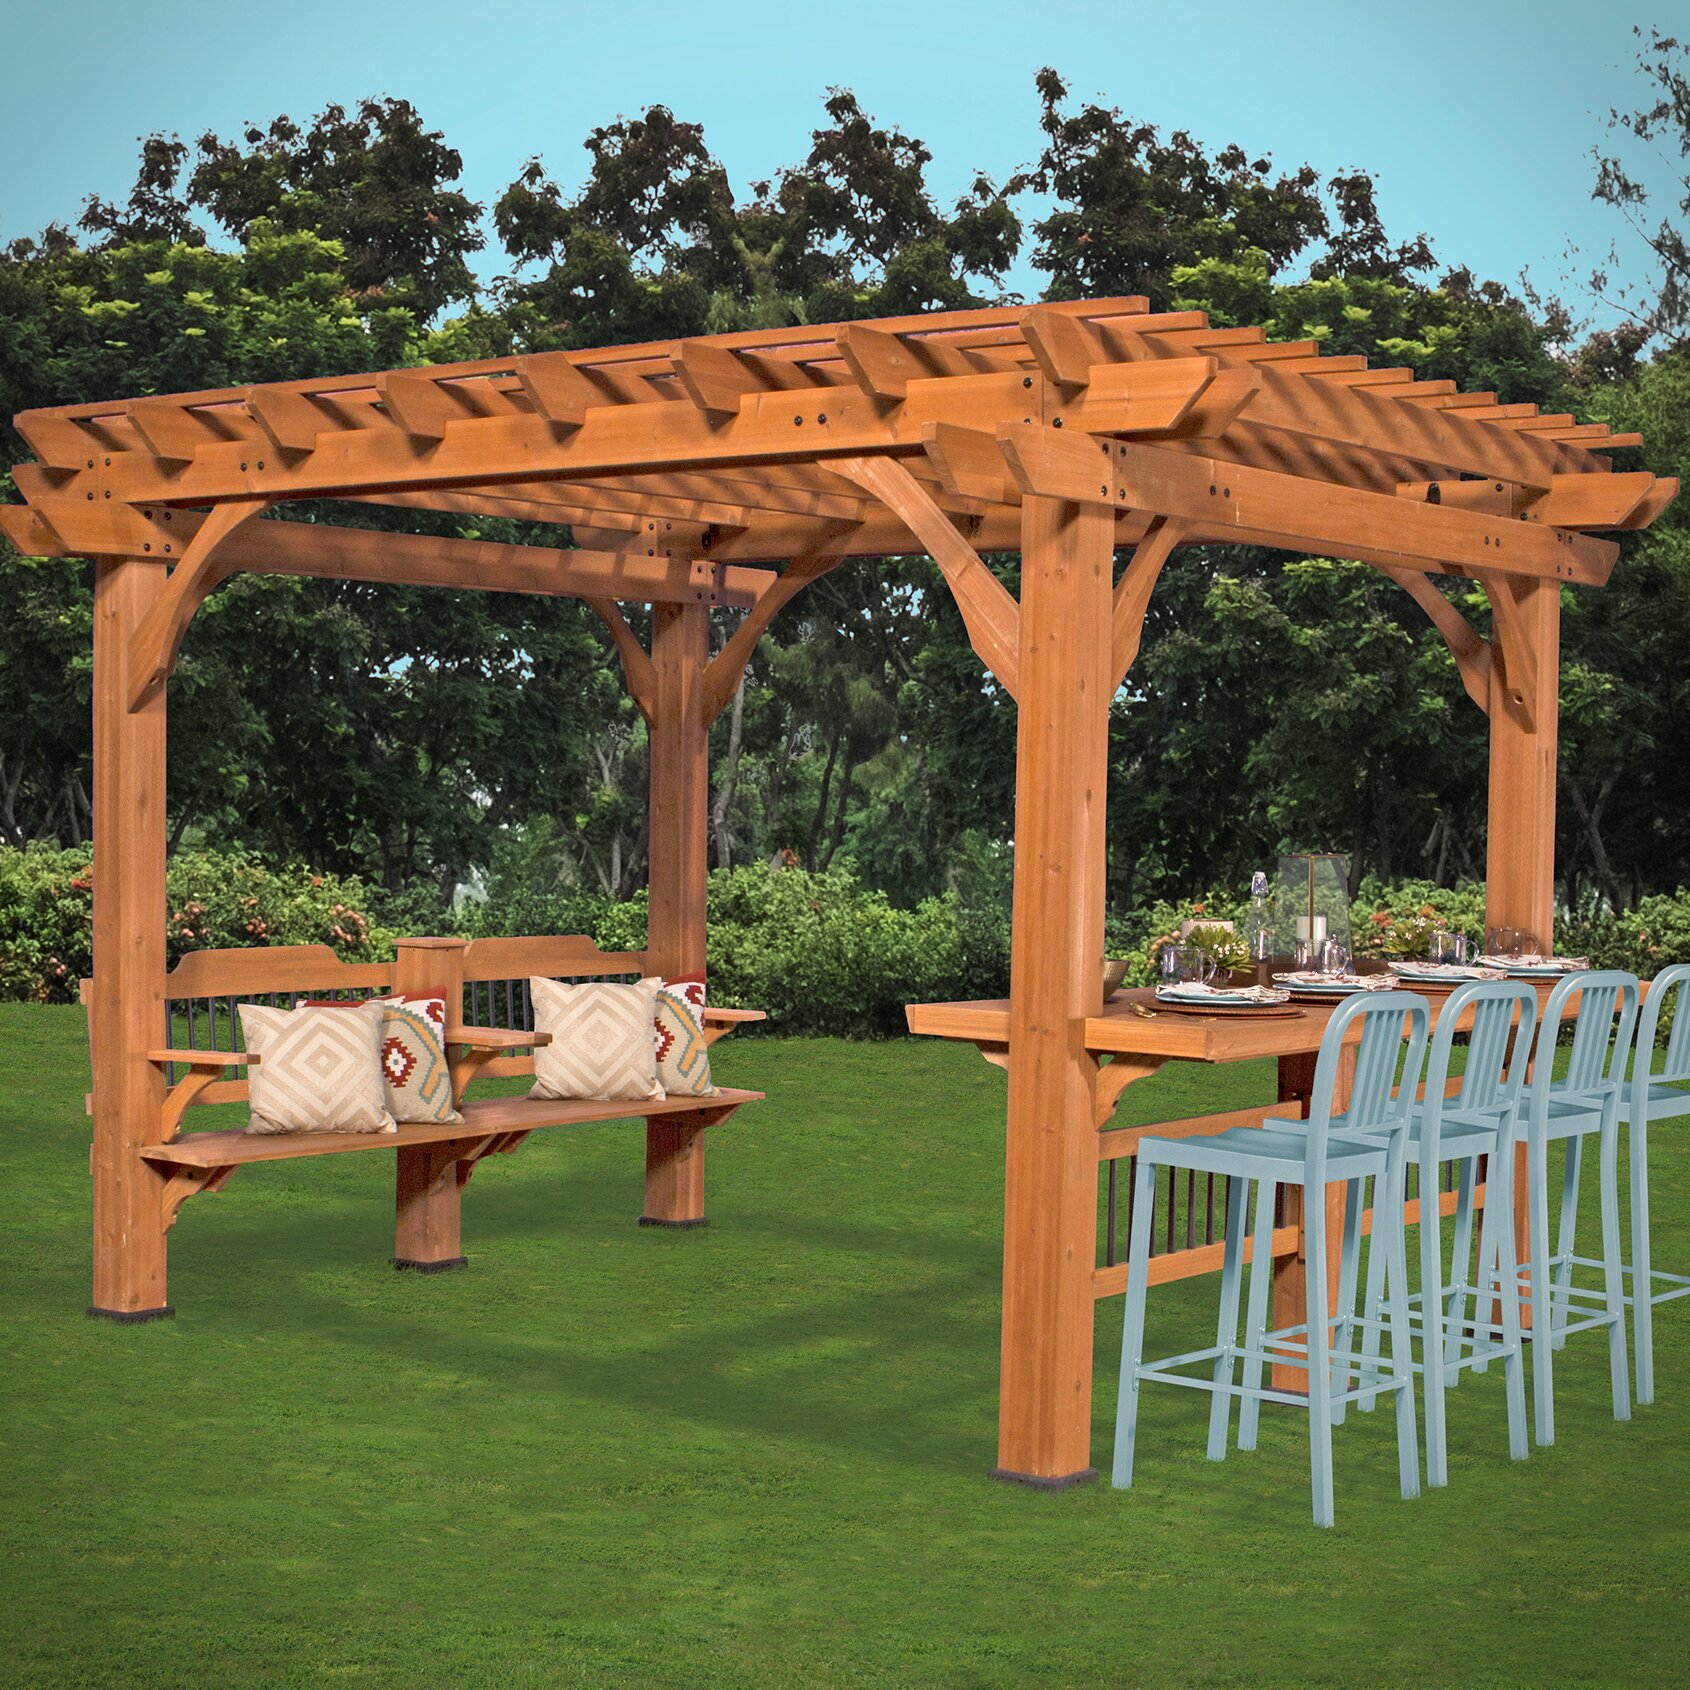 backyard discovery oasis ft h x 12 ft w x 10 ft d pergola